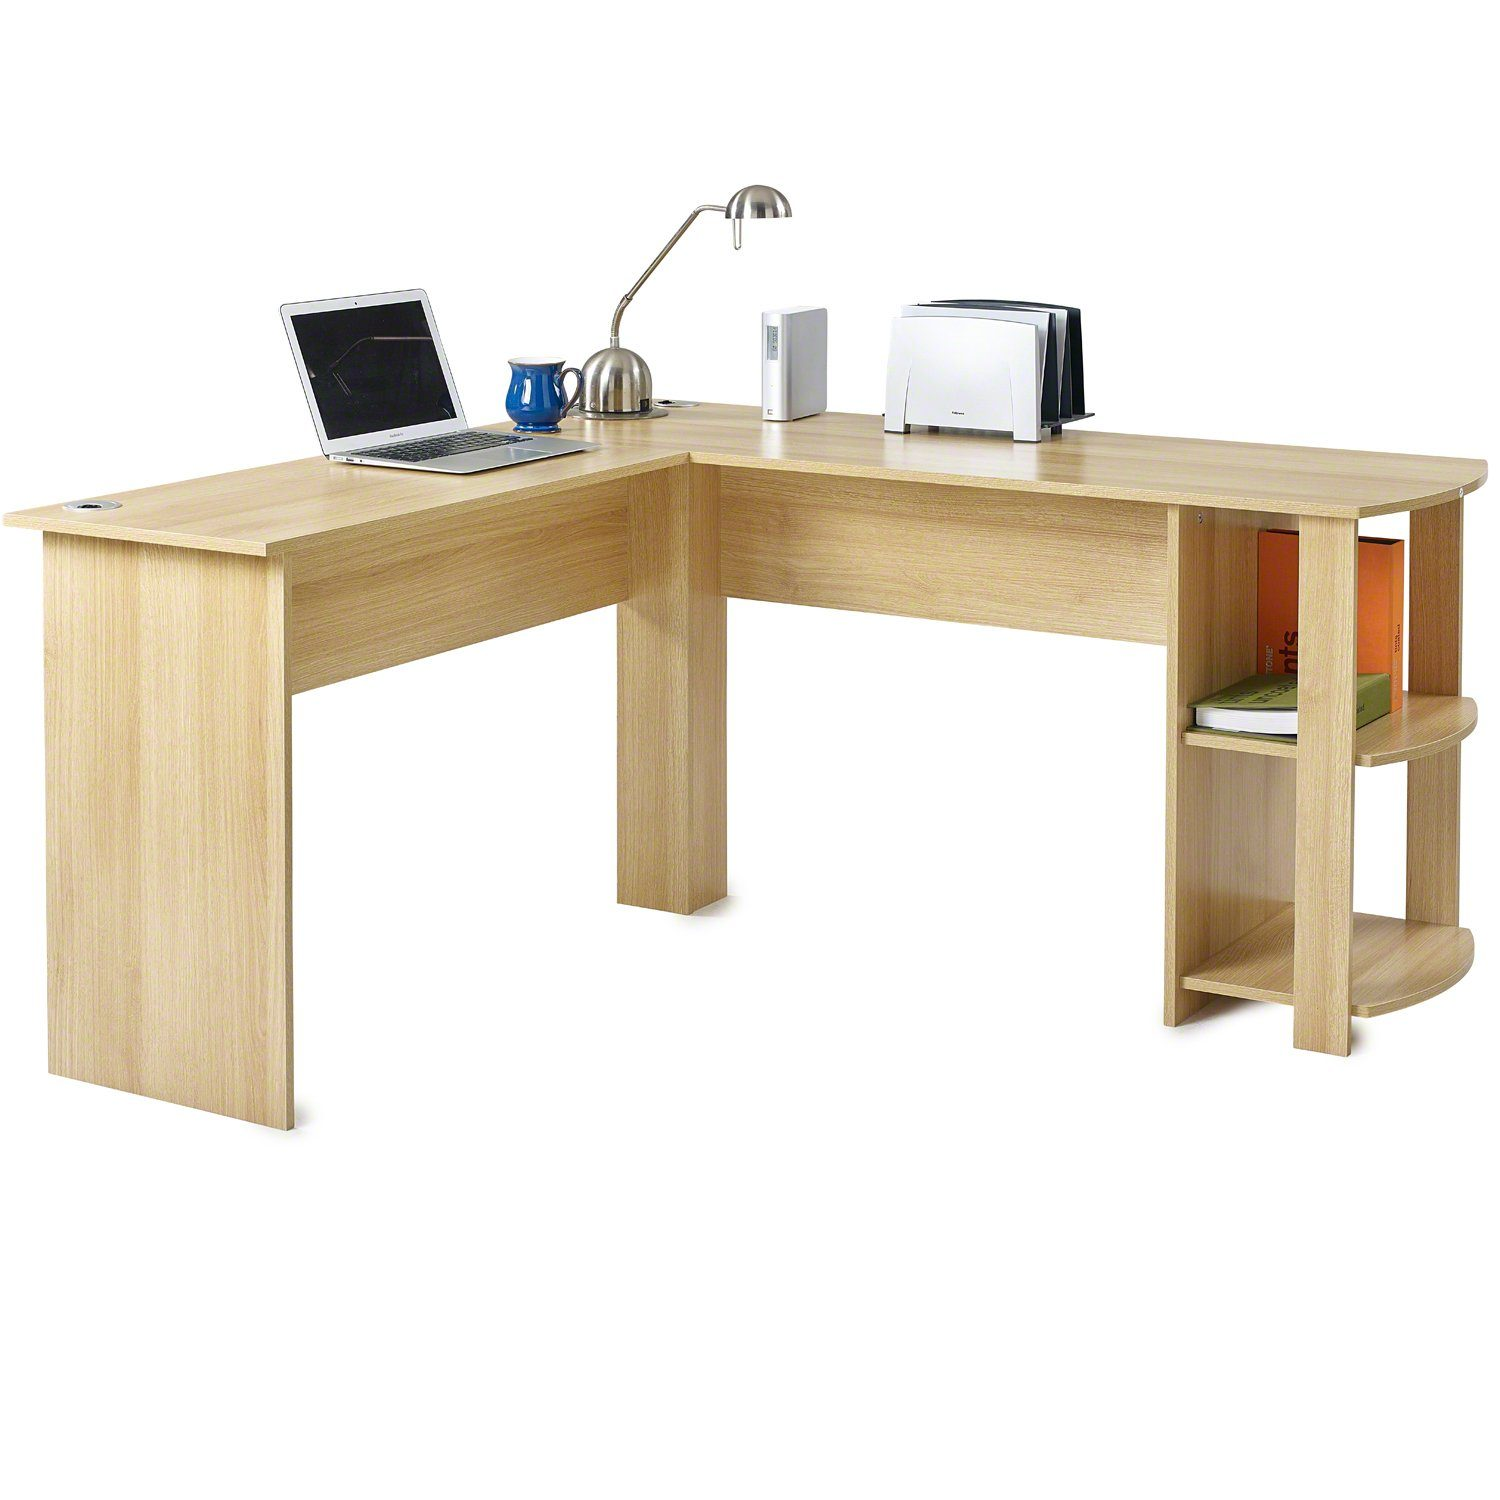 Oak L-Shaped Office Desk with Shelves - Laura James